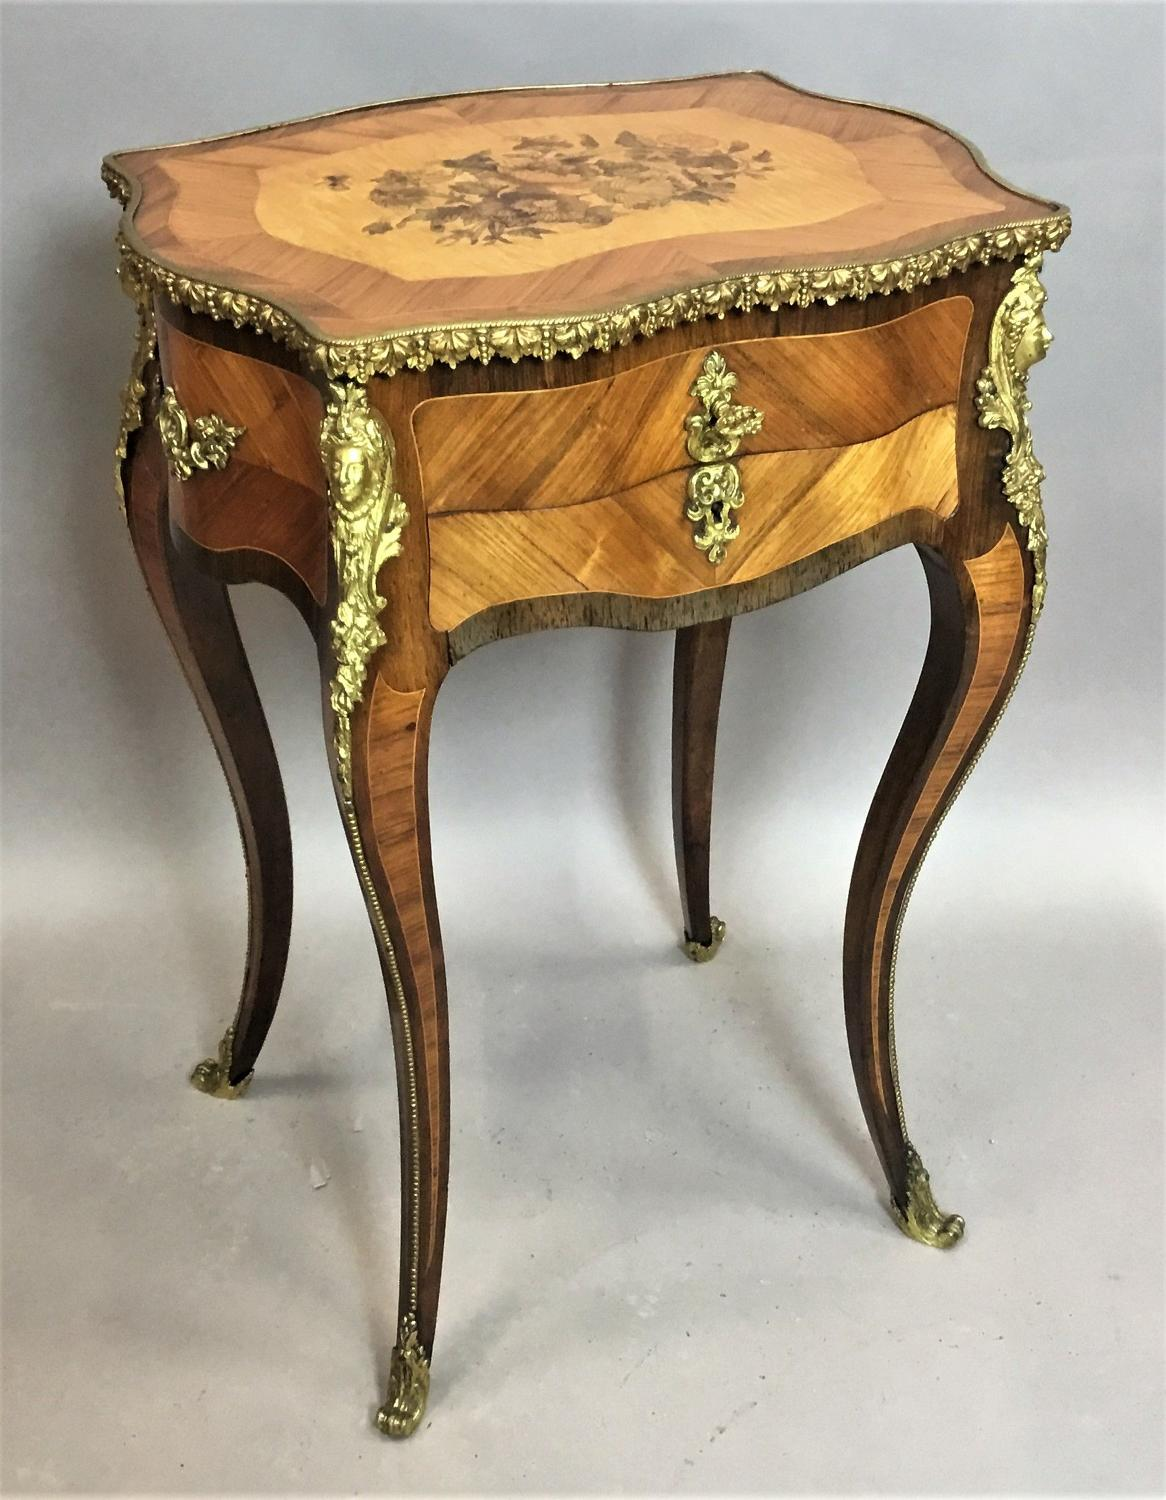 C19th French vanity table